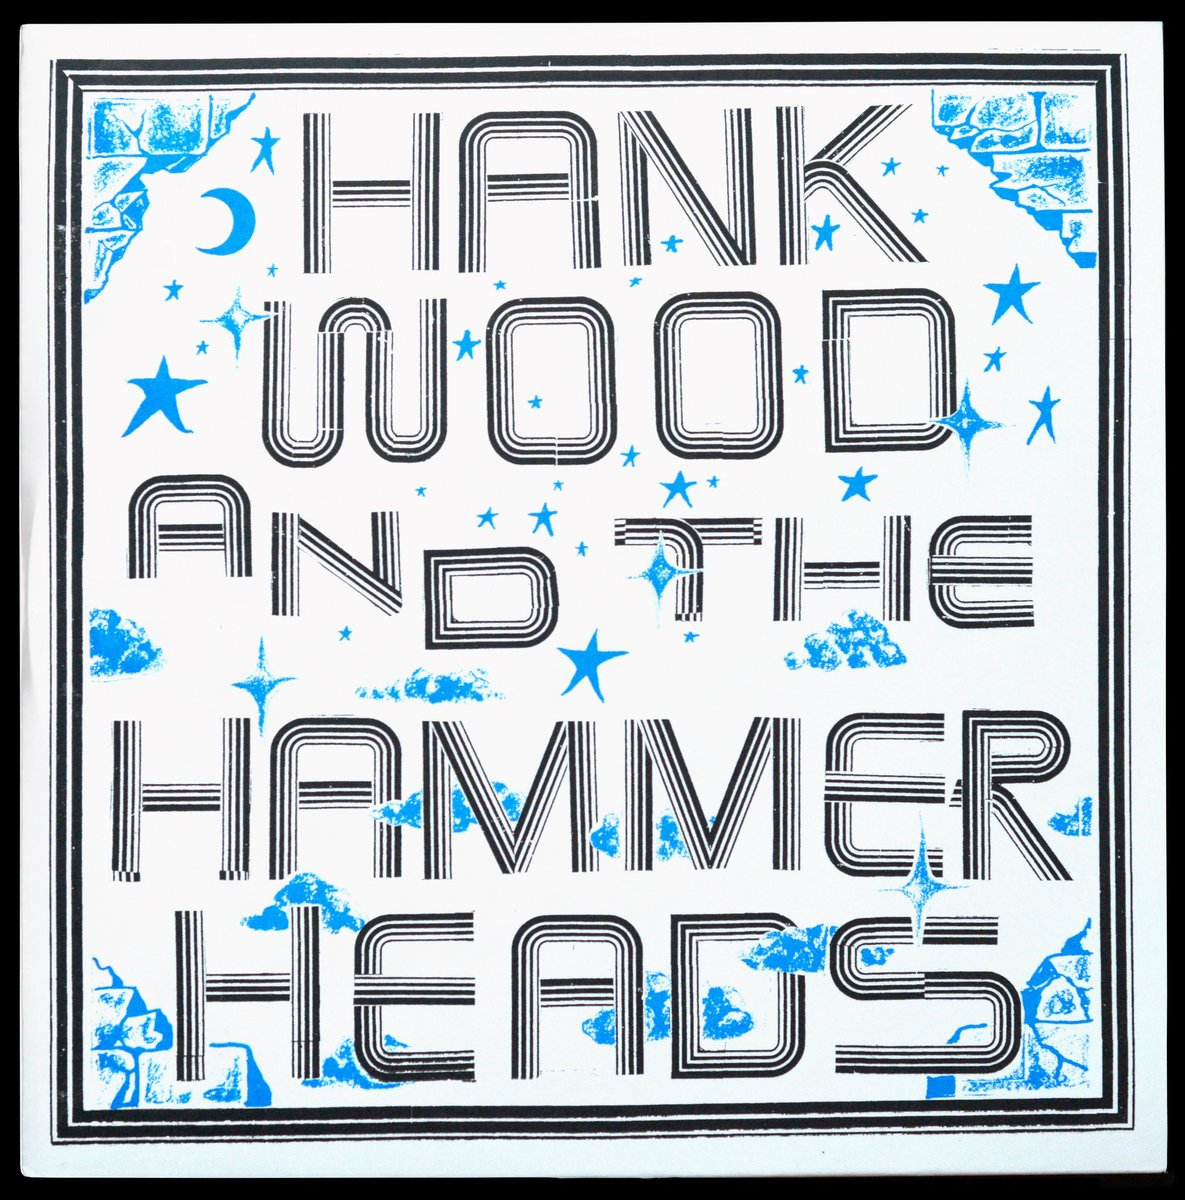 Stream the new self-titled album from unhinged New York punks Hank Wood And The Hammerheads https://t.co/vEsoPz6bMo https://t.co/MKCm5JUW6W